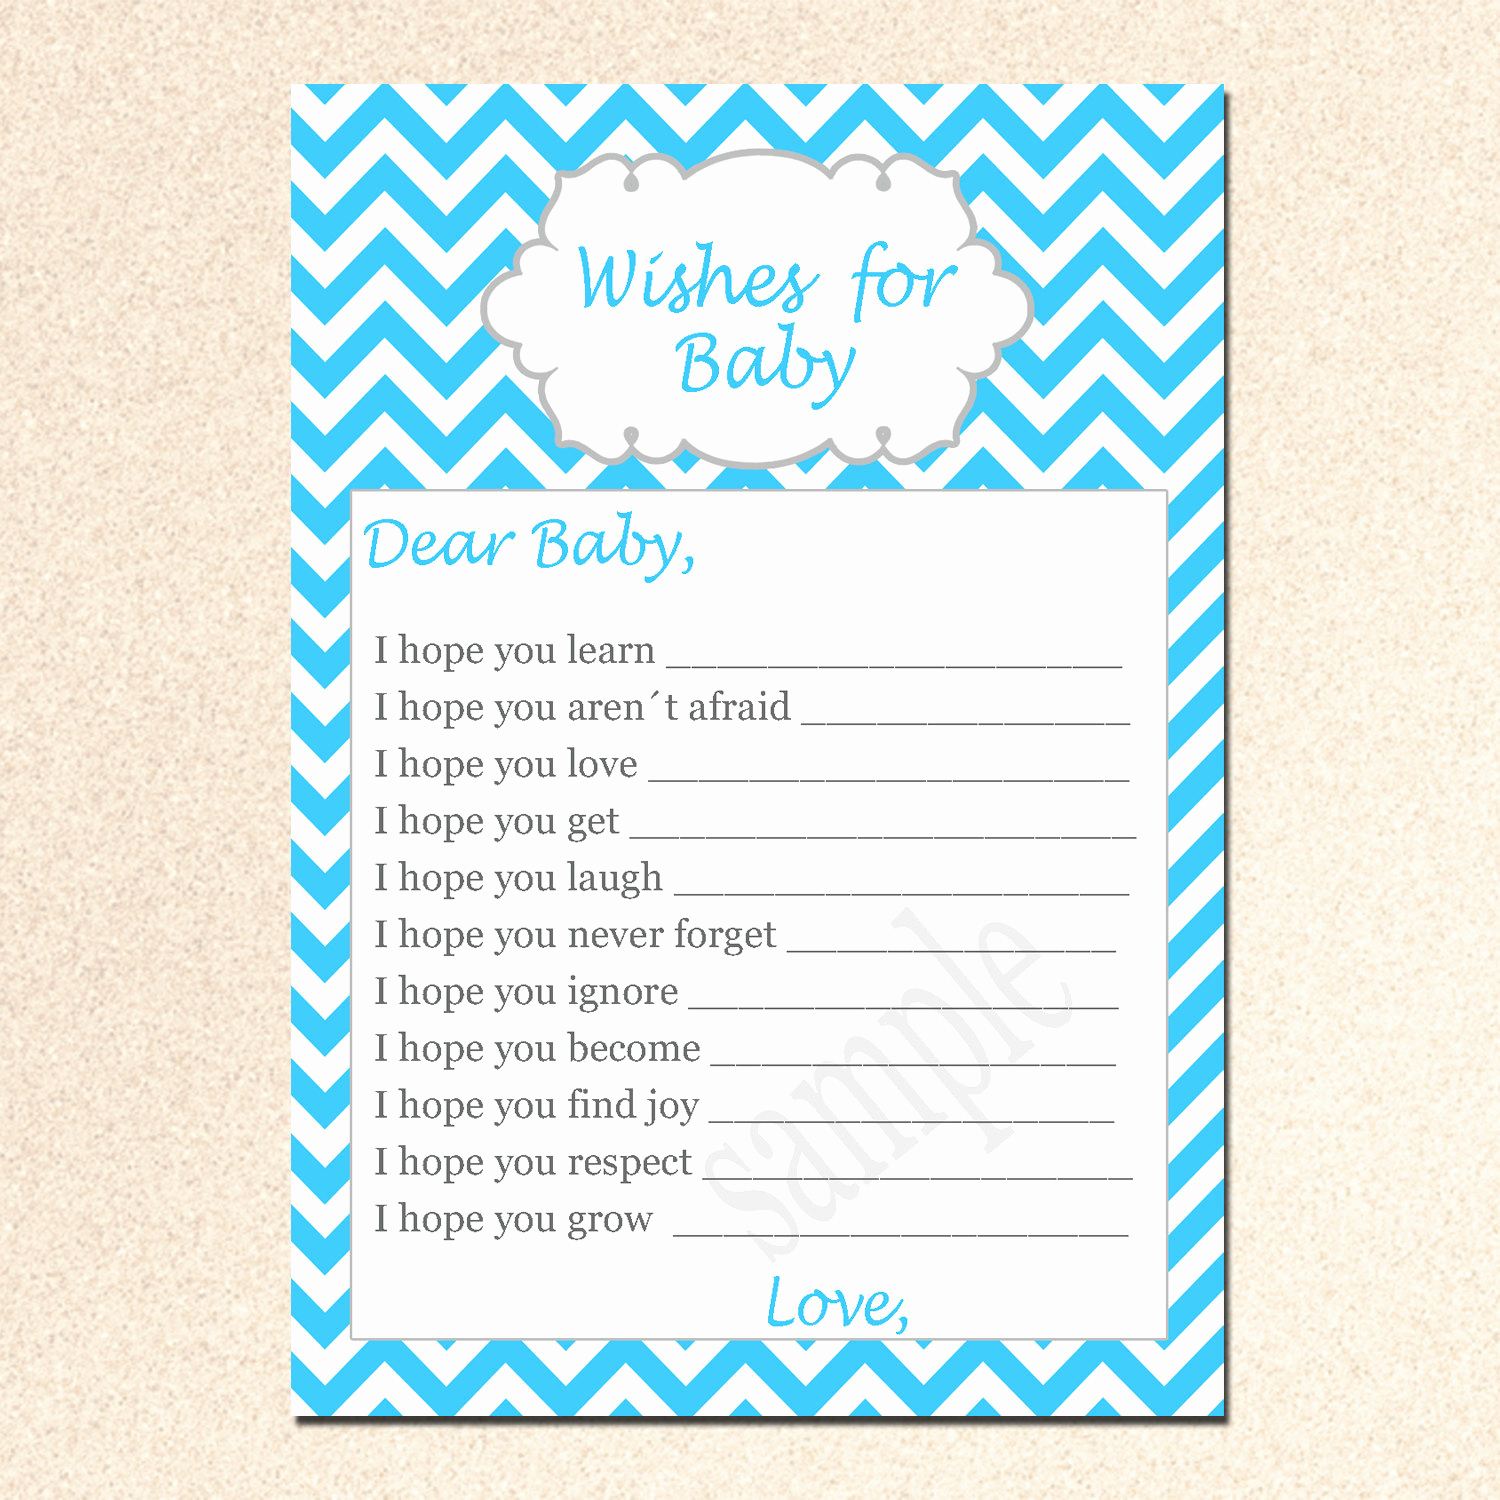 Printable Baby Shower Cards Best Of Wishes for Baby Card New Baby Messages Well Wishes Card Aqua